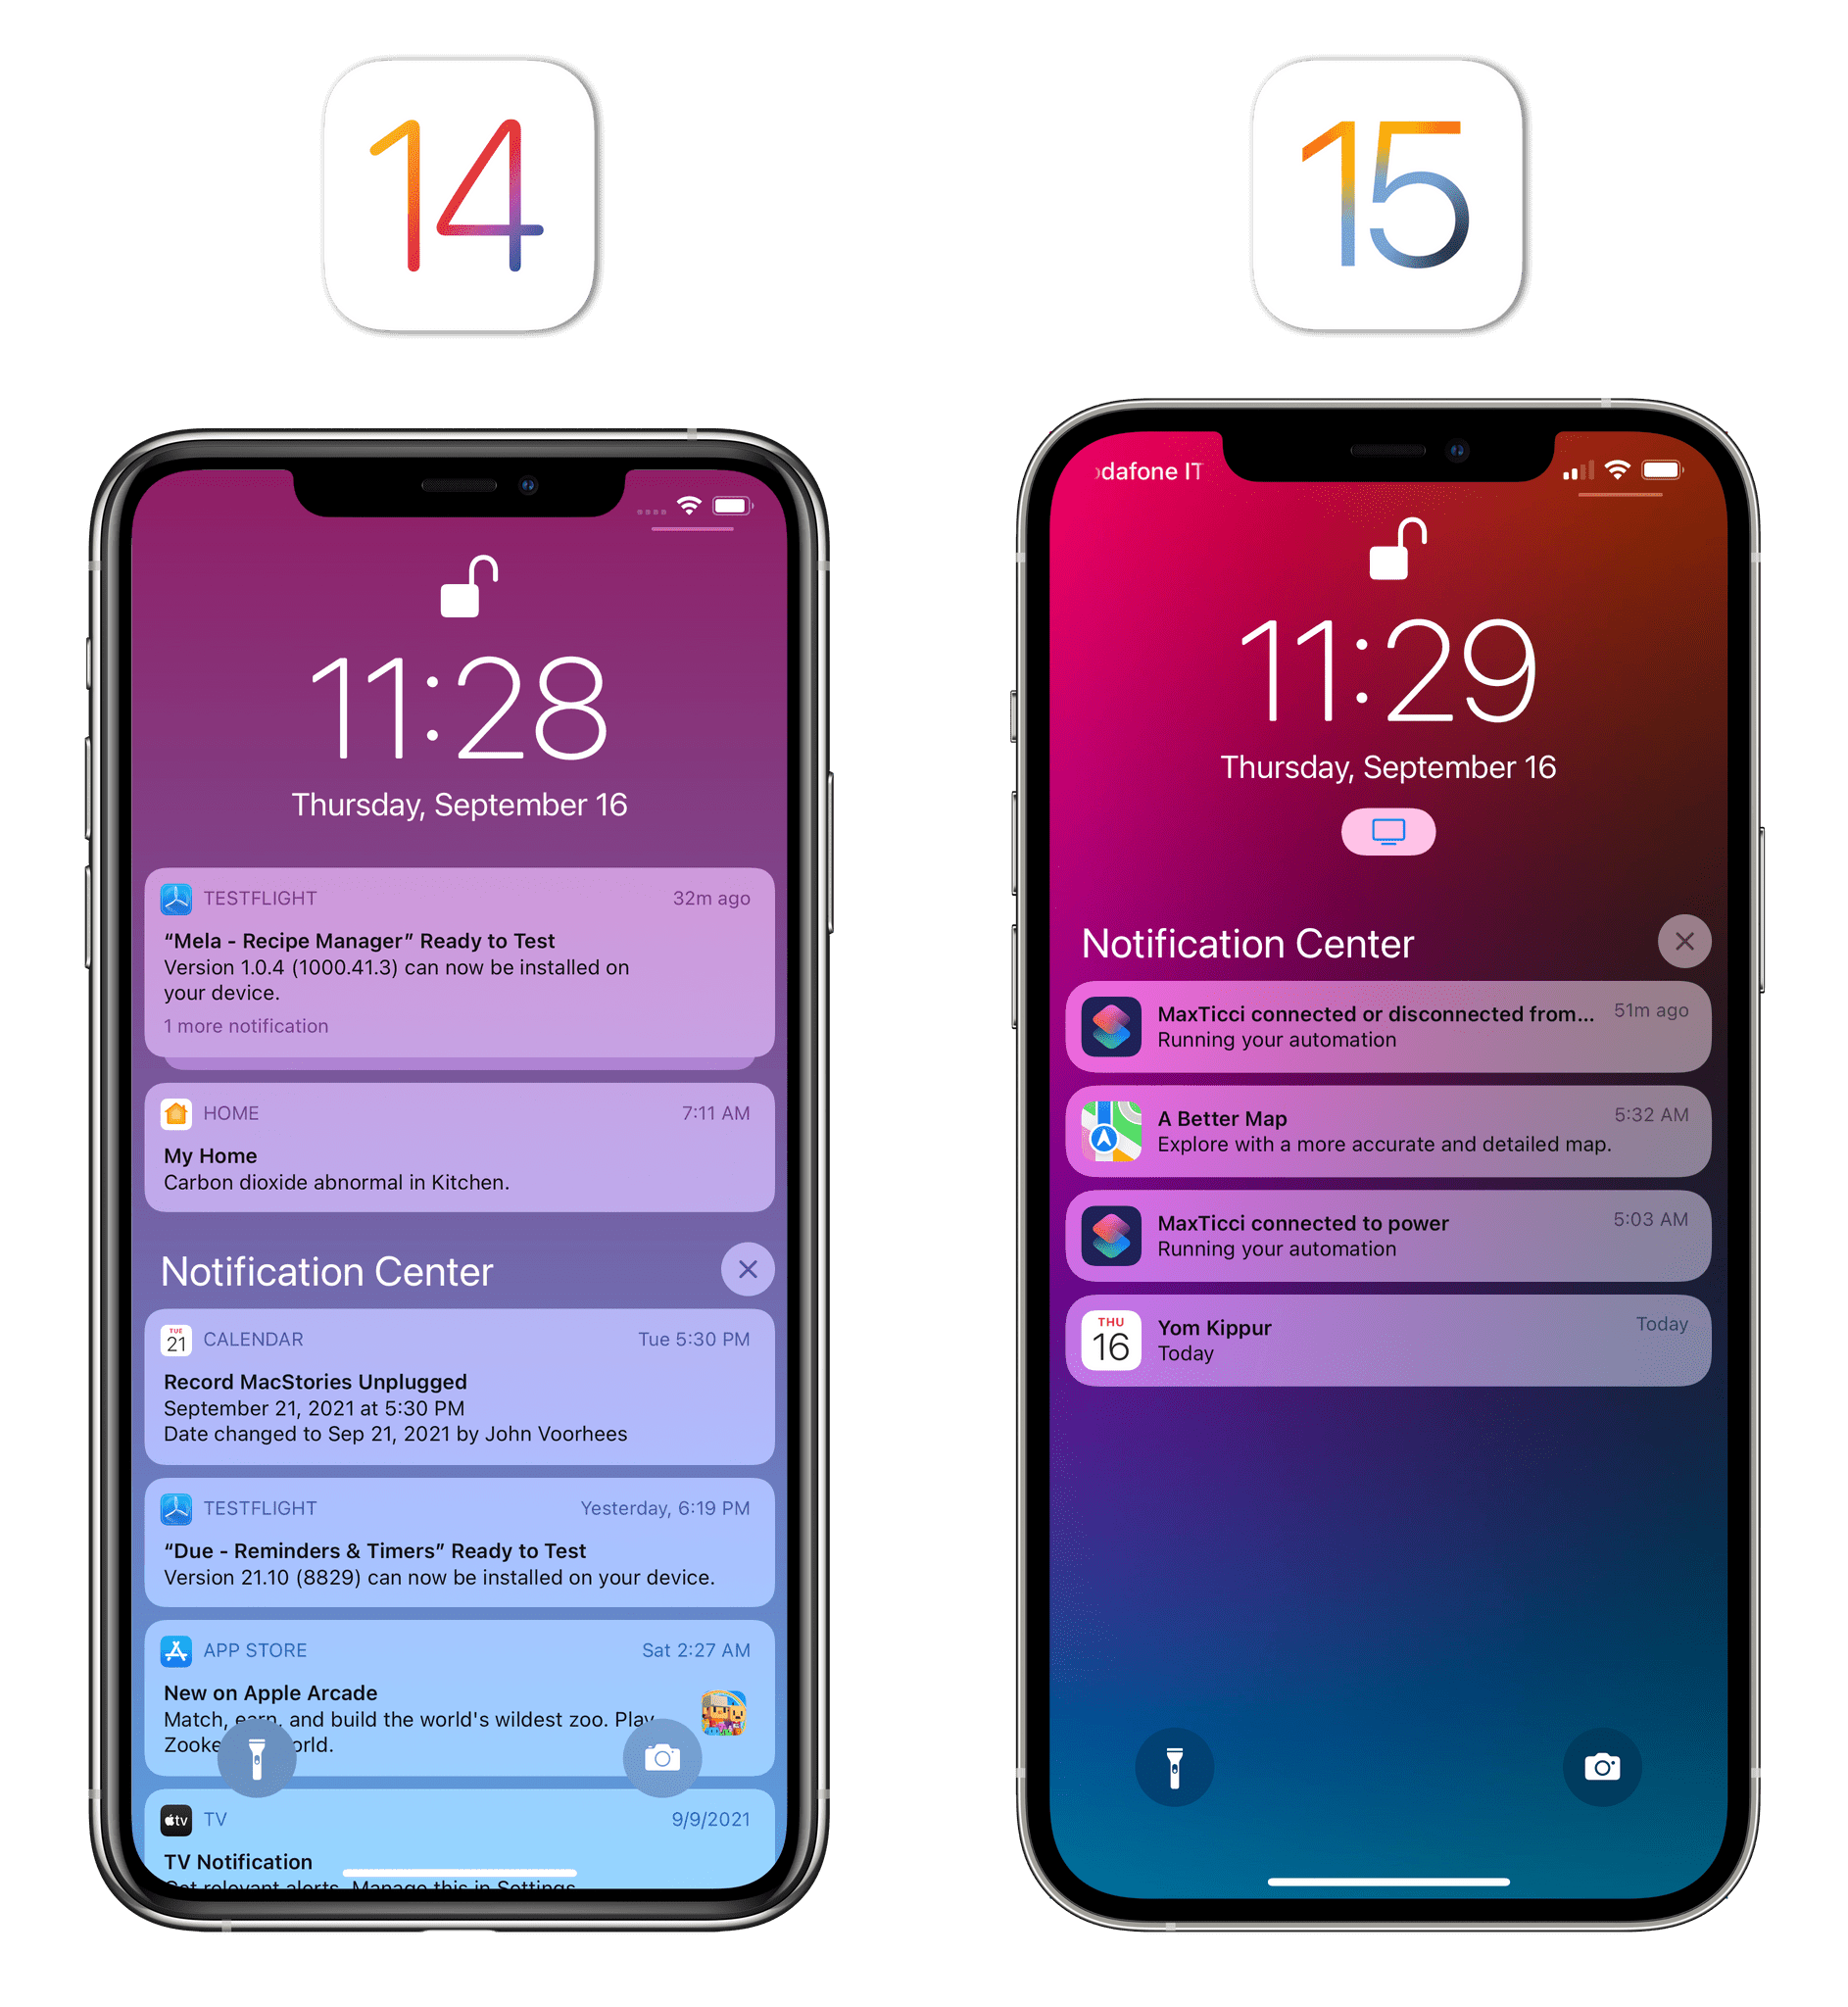 Notifications are more compact in iOS 15 despite having bigger icons.